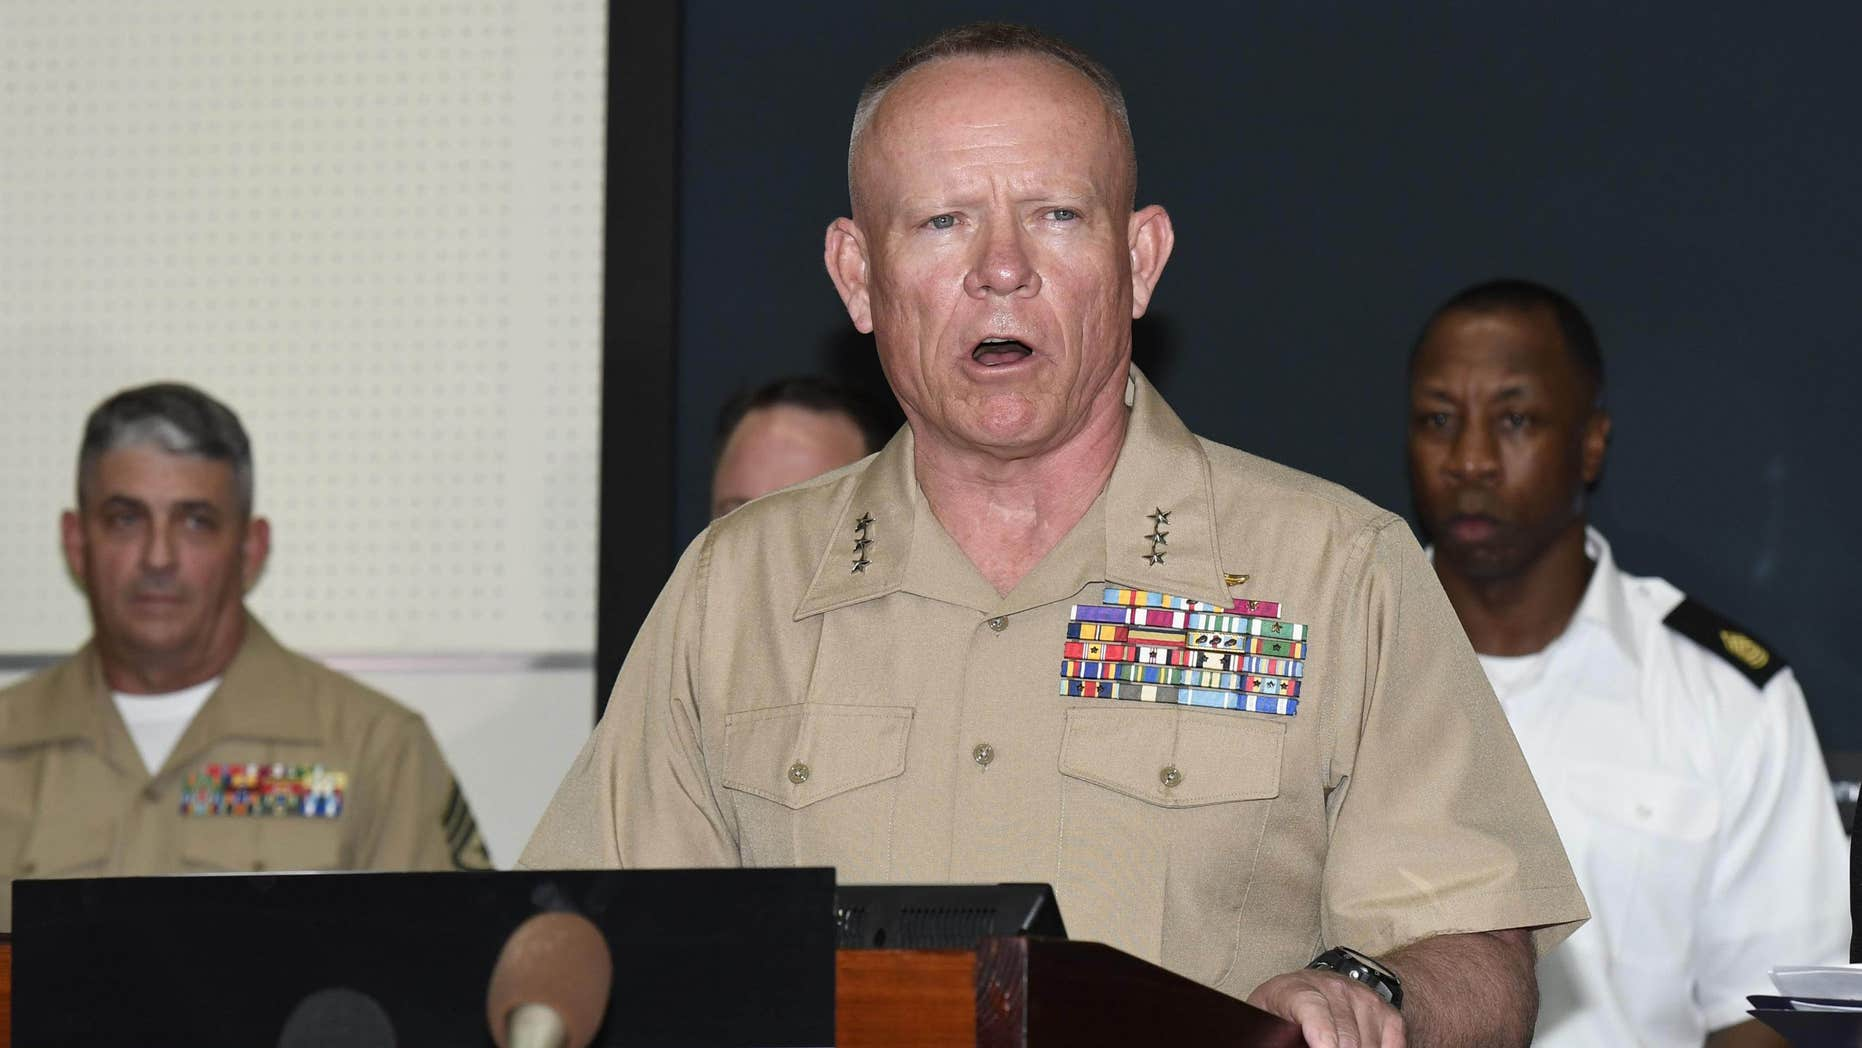 Lt. Gen. Lawrence D. Nicholson, U.S. Marine Corps Commanding General of III Marine Expeditionary Force, speaks during a press conference at the USMC Camp Foster in Okinawa, Japan after a former Marine was arrested on suspicion of killing a woman on the southern Japanese island.